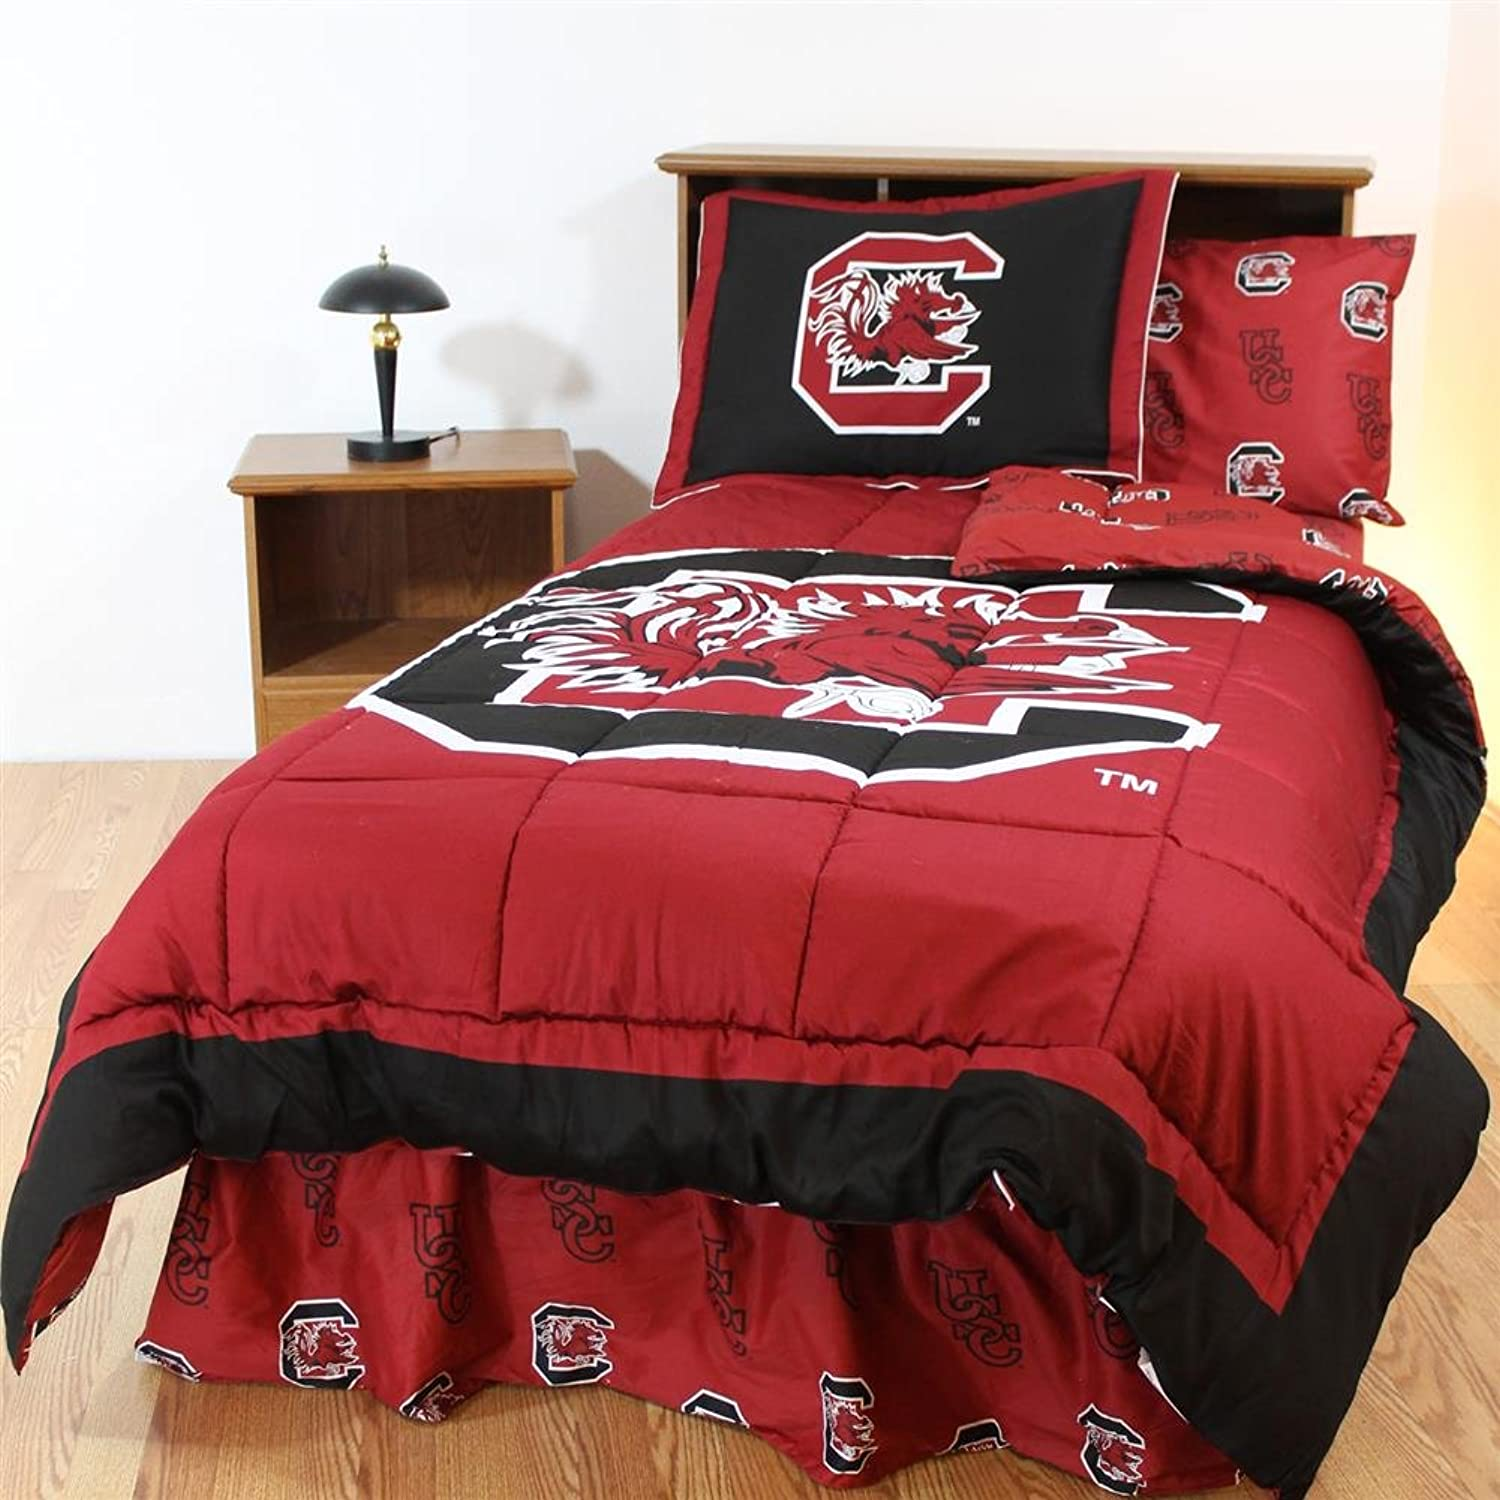 South Carolina Gamecocks Bed in a Bag King  with Team colord Sheets